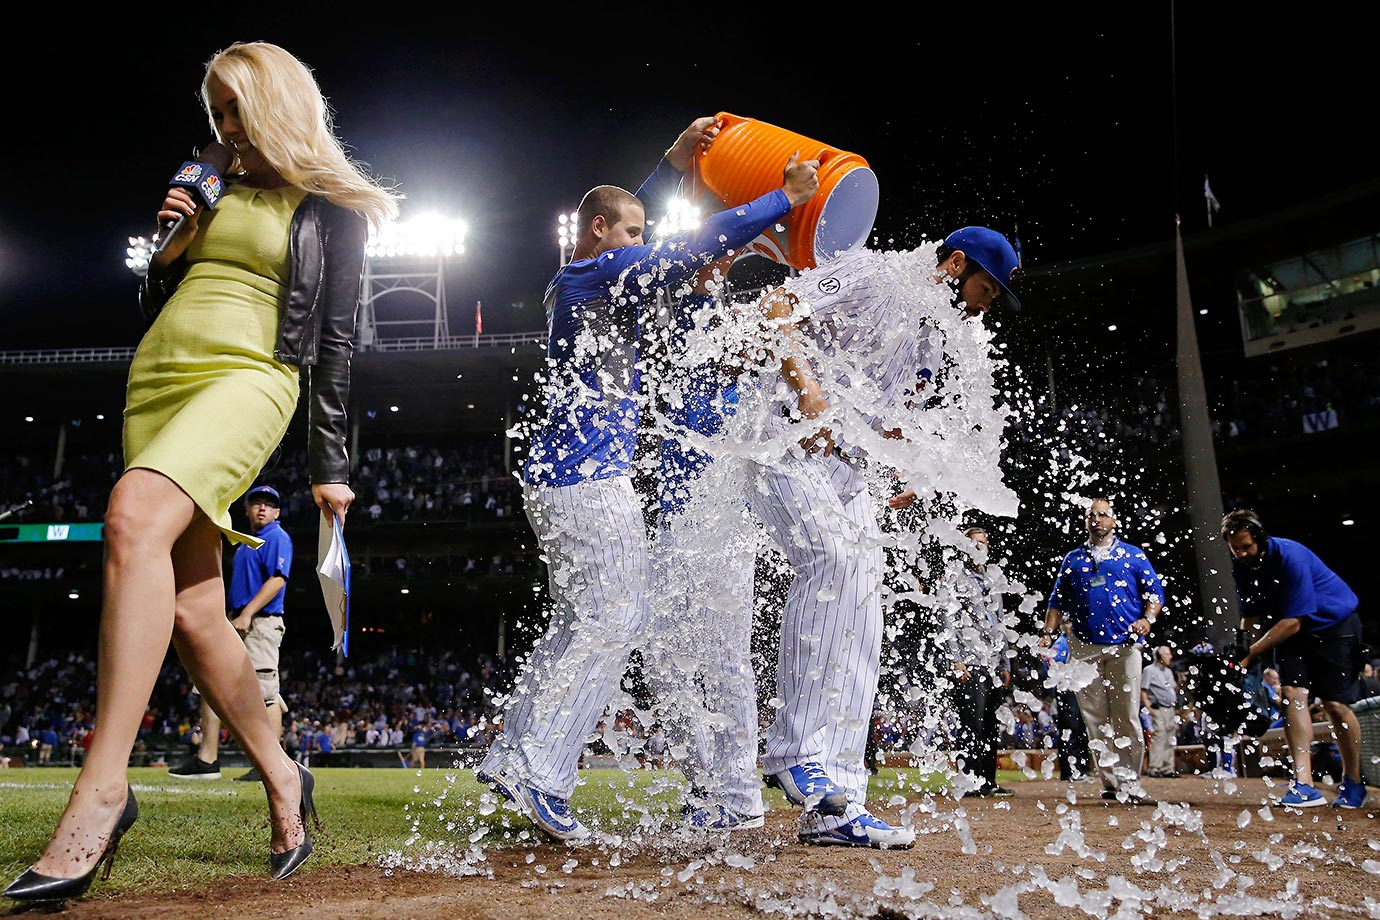 Jake Arrieta of the Cubs is doused after his 20th win of the season.